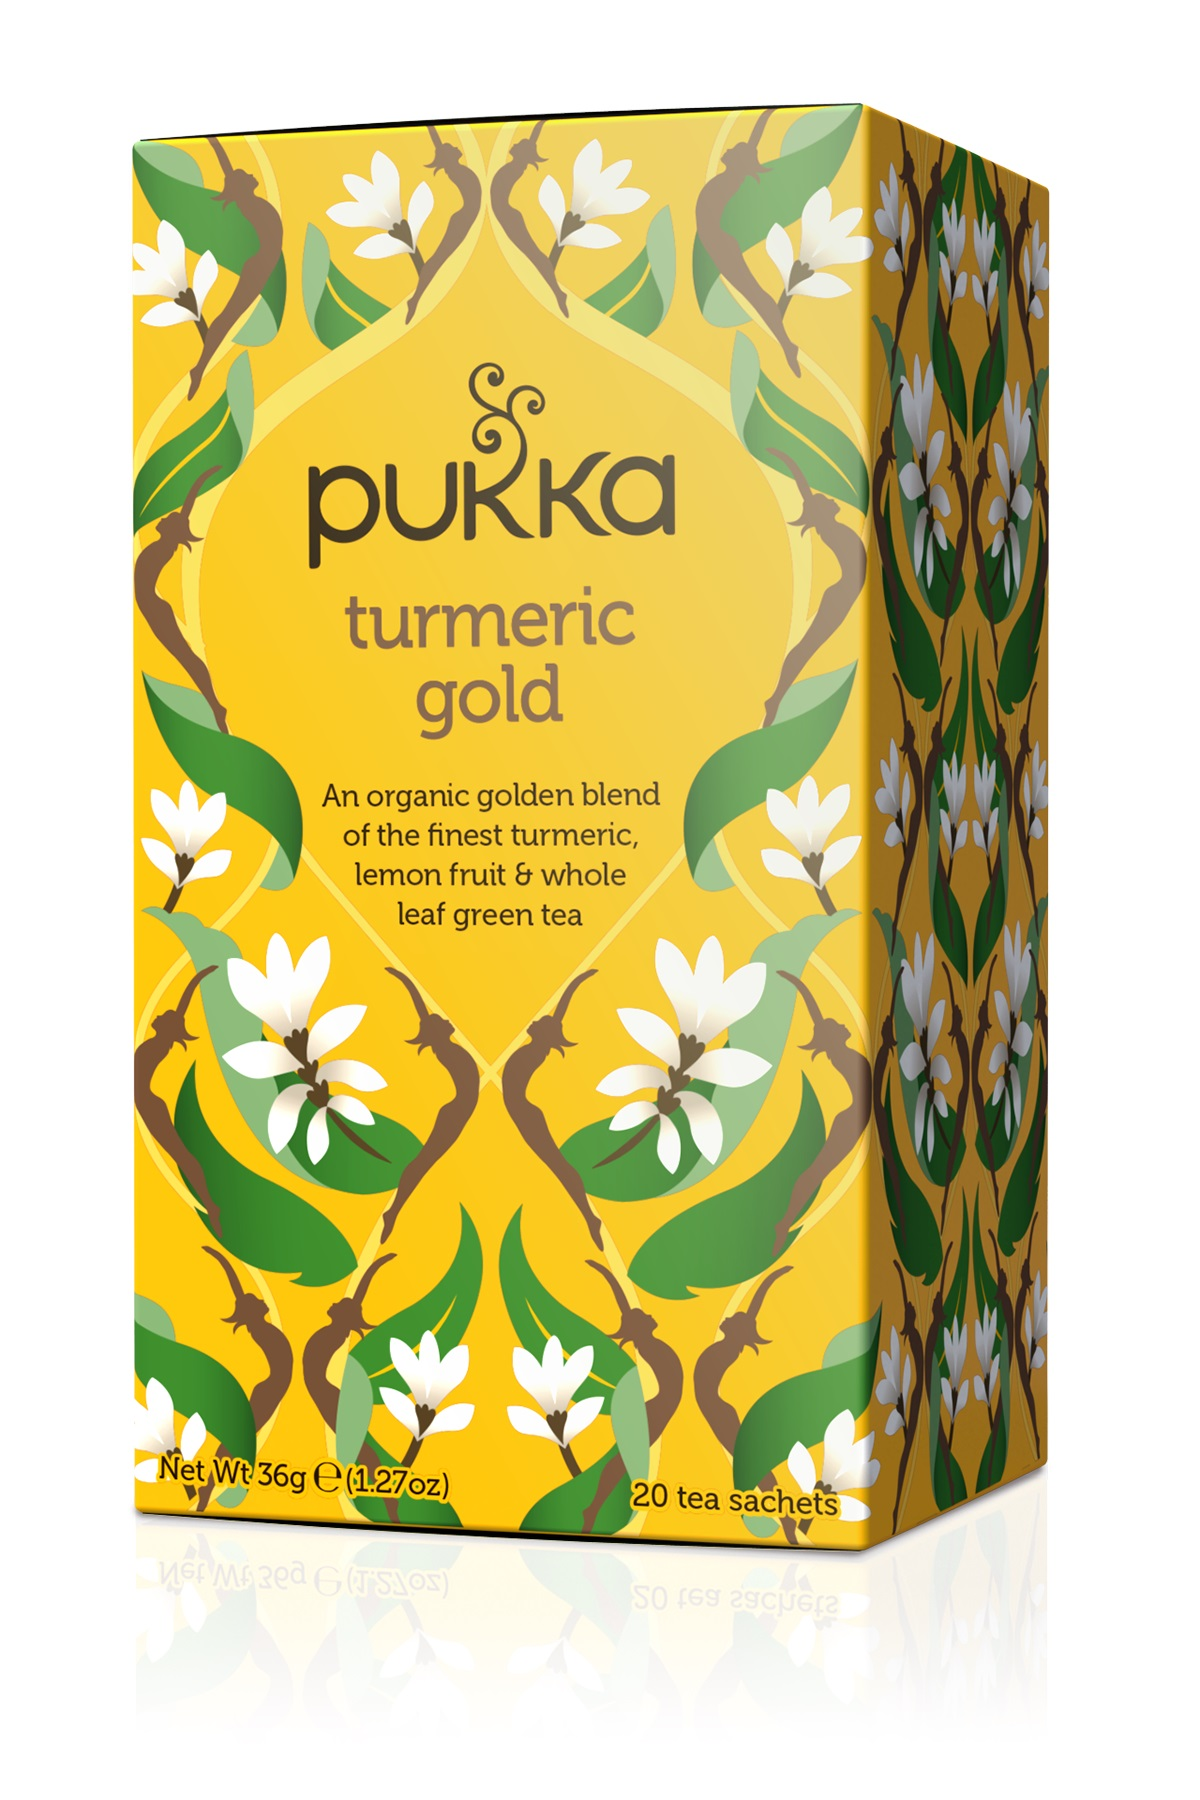 Pukka Turmeric Gold, RRP £2.49 for box of 20 bags (Pukka/PA)